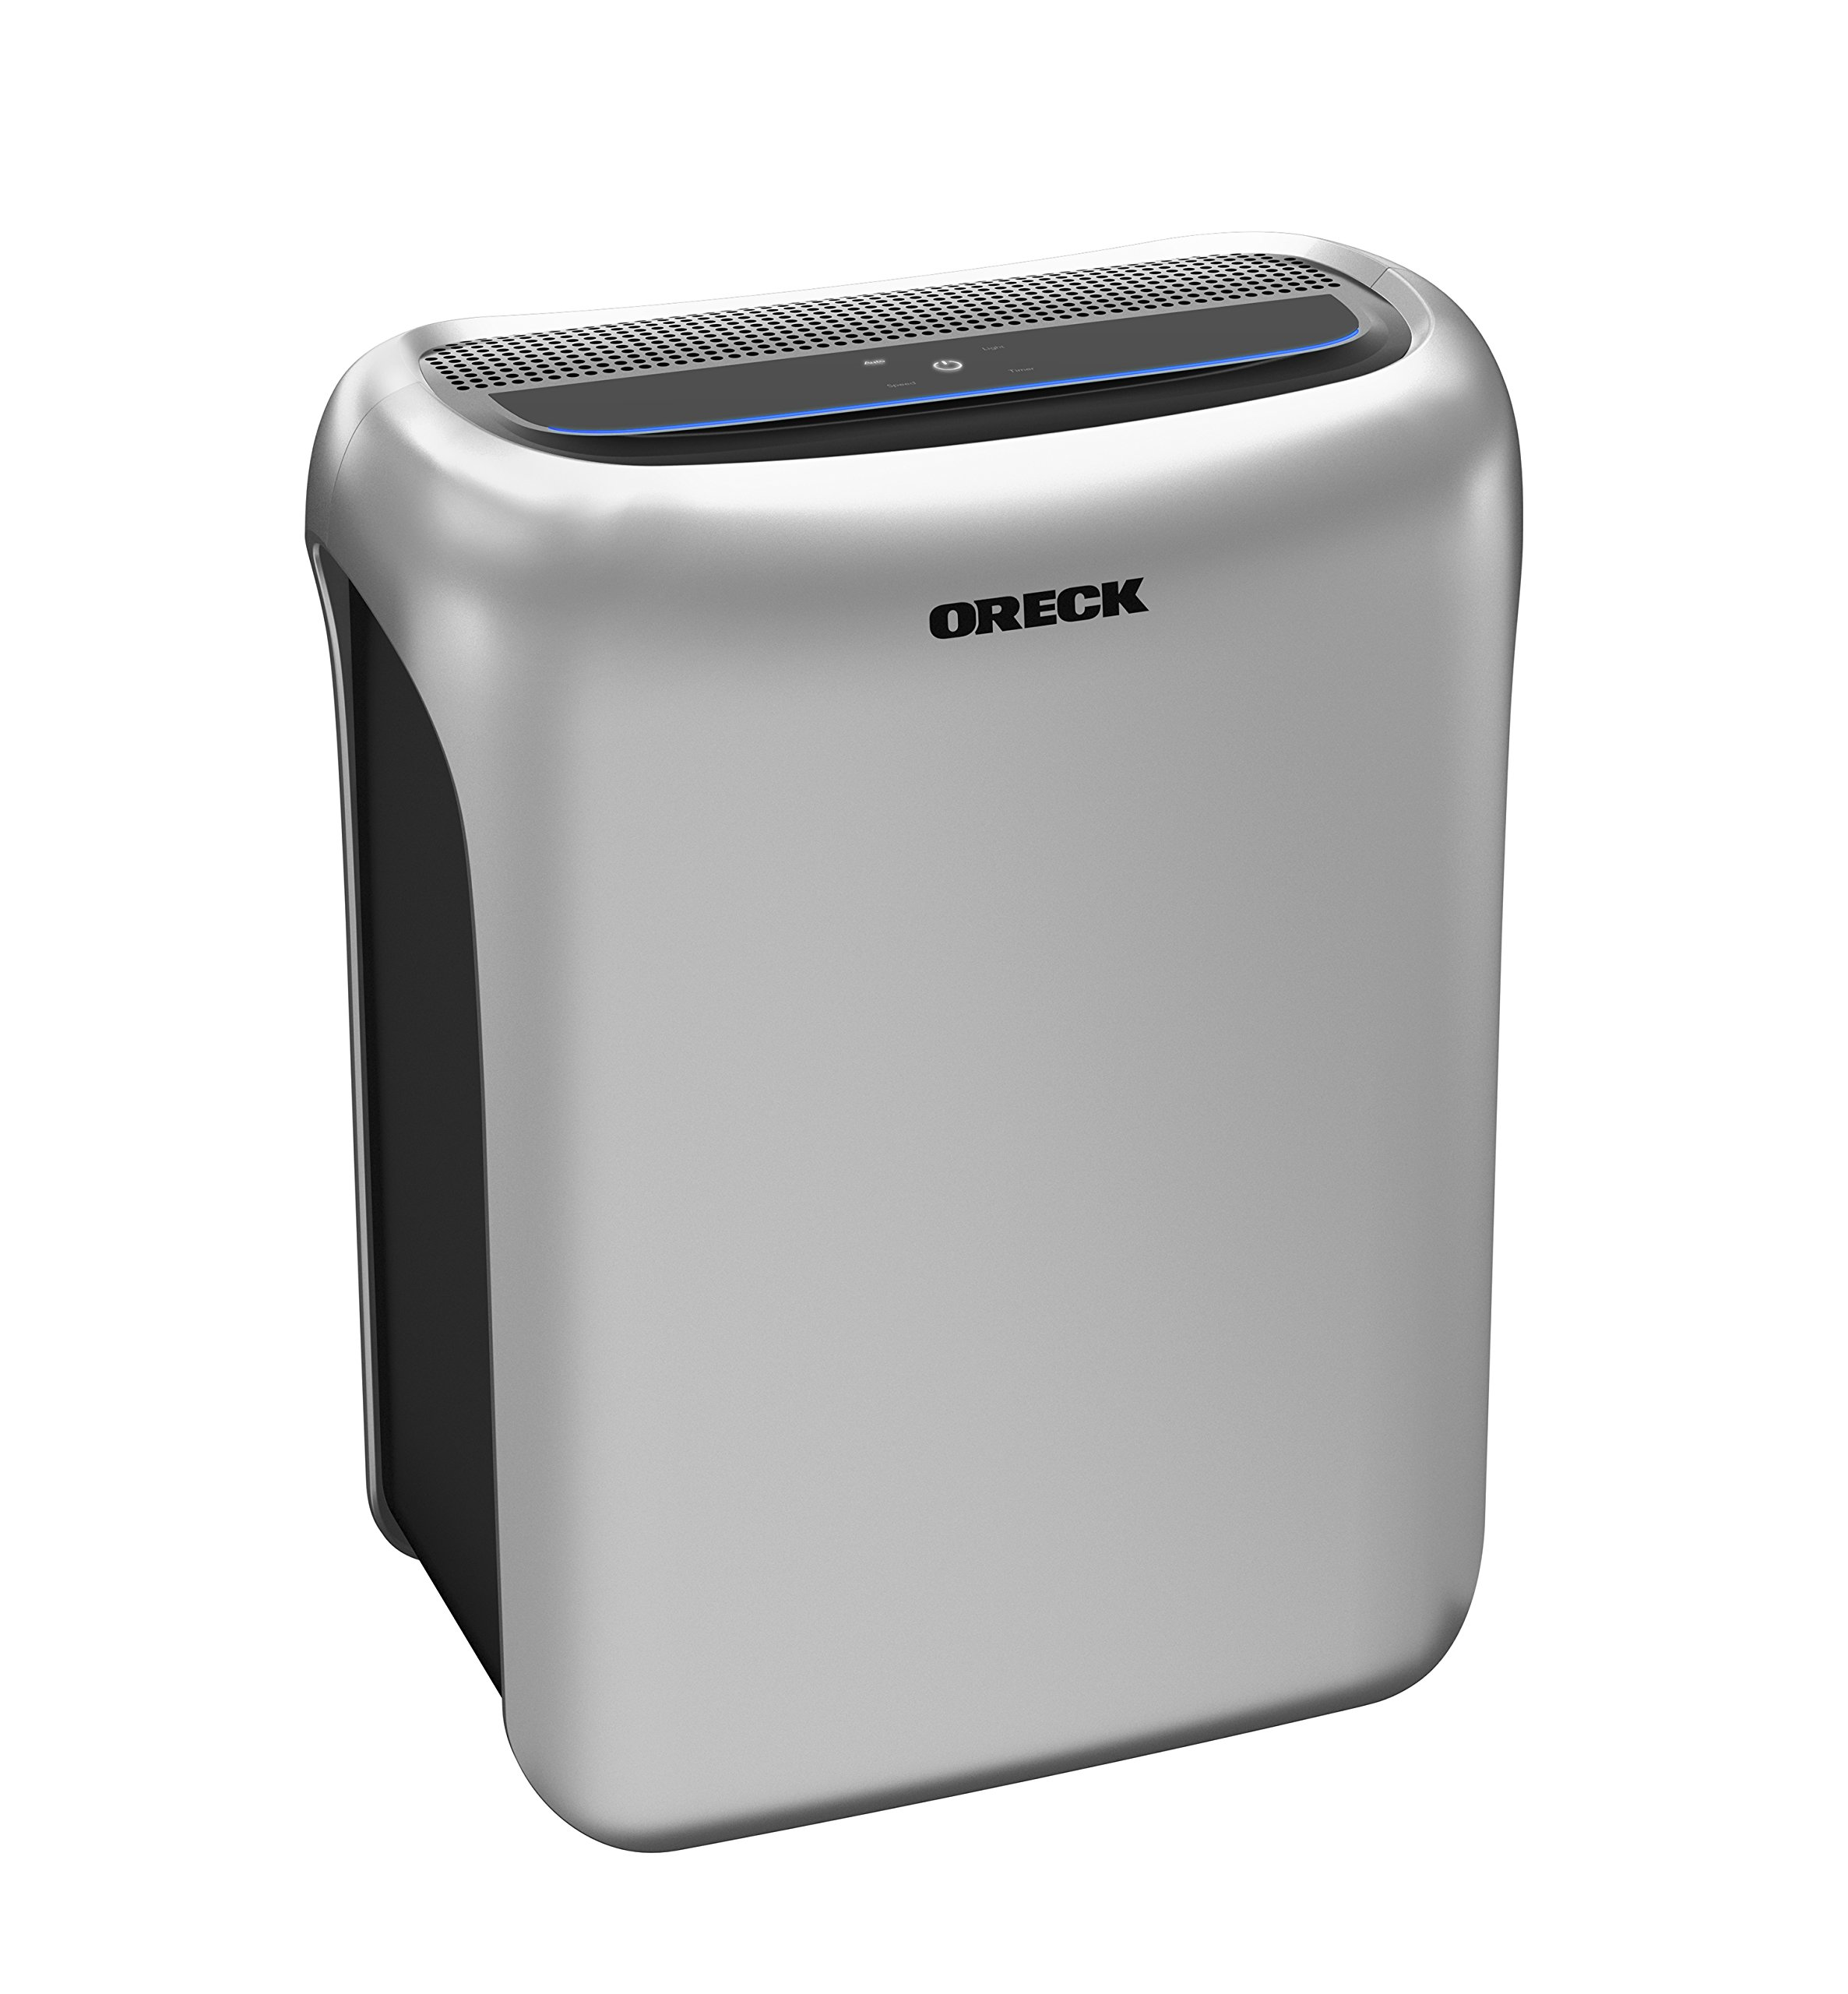 Oreck WK16002 Air Response HEPA Purifier with Odor Control & Auto Mode for Large Rooms (Available in 3 Sizes)